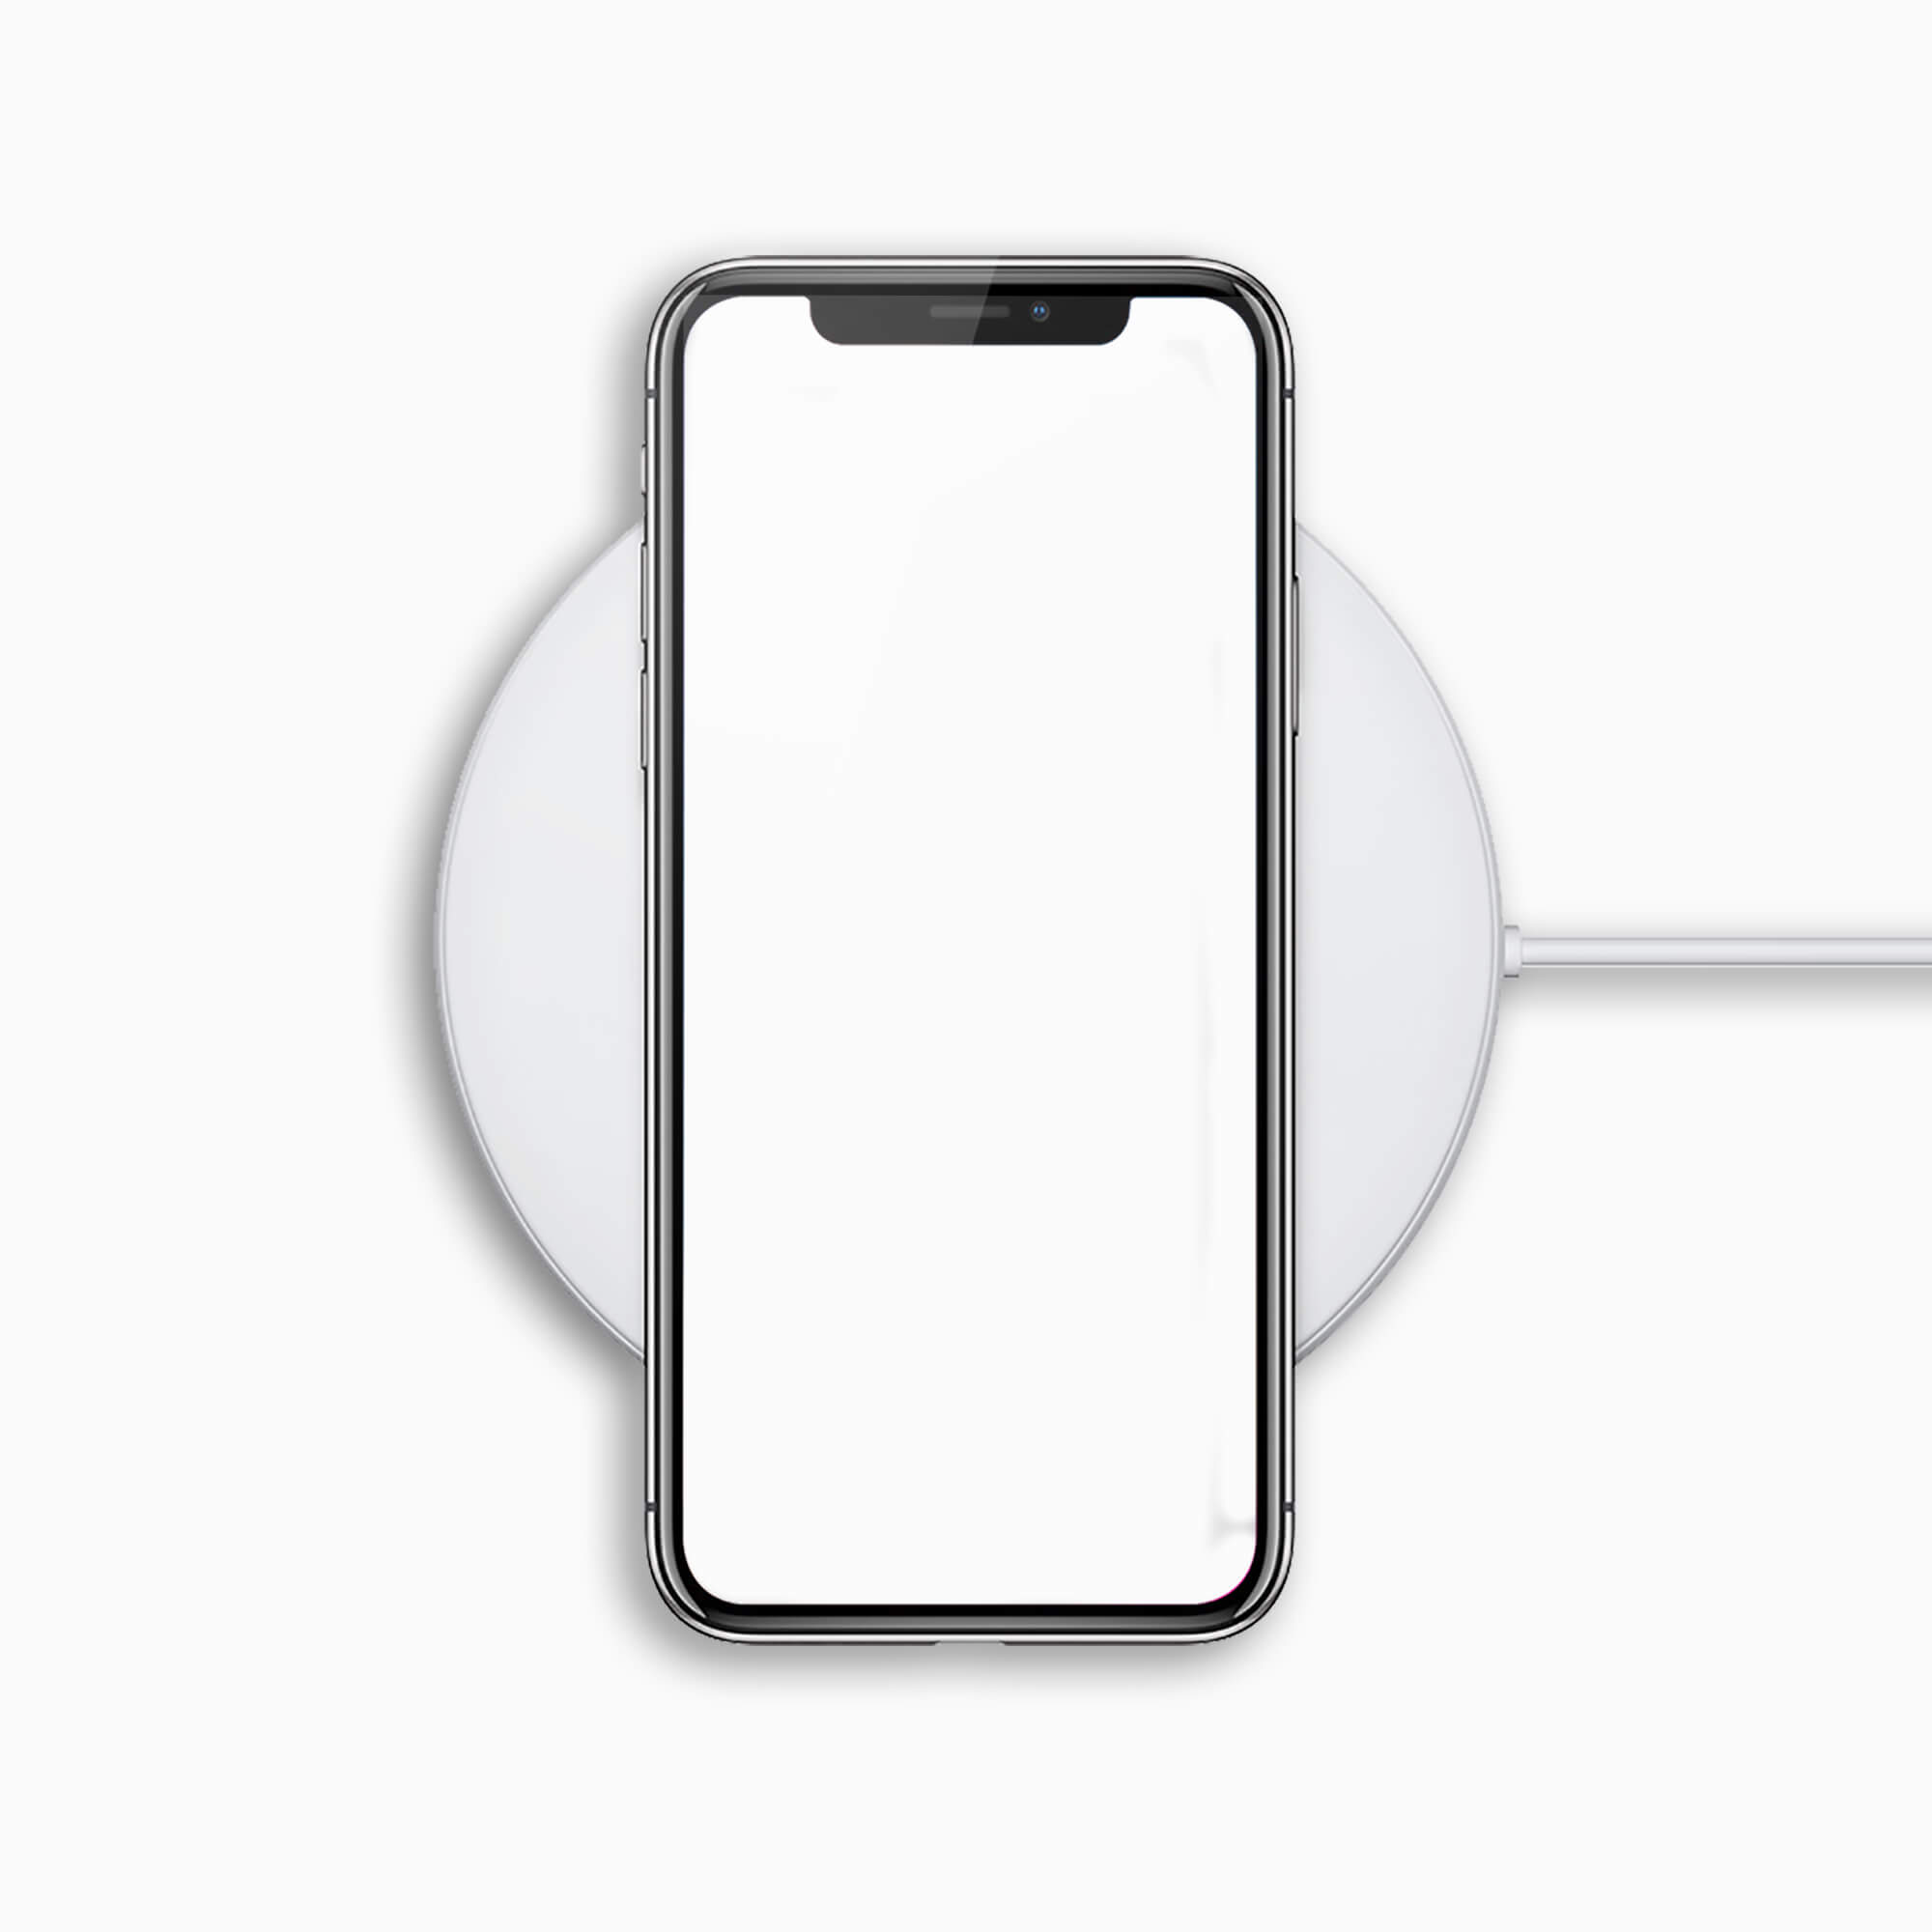 Blank Free Wireless Charger Mockup PSD Template